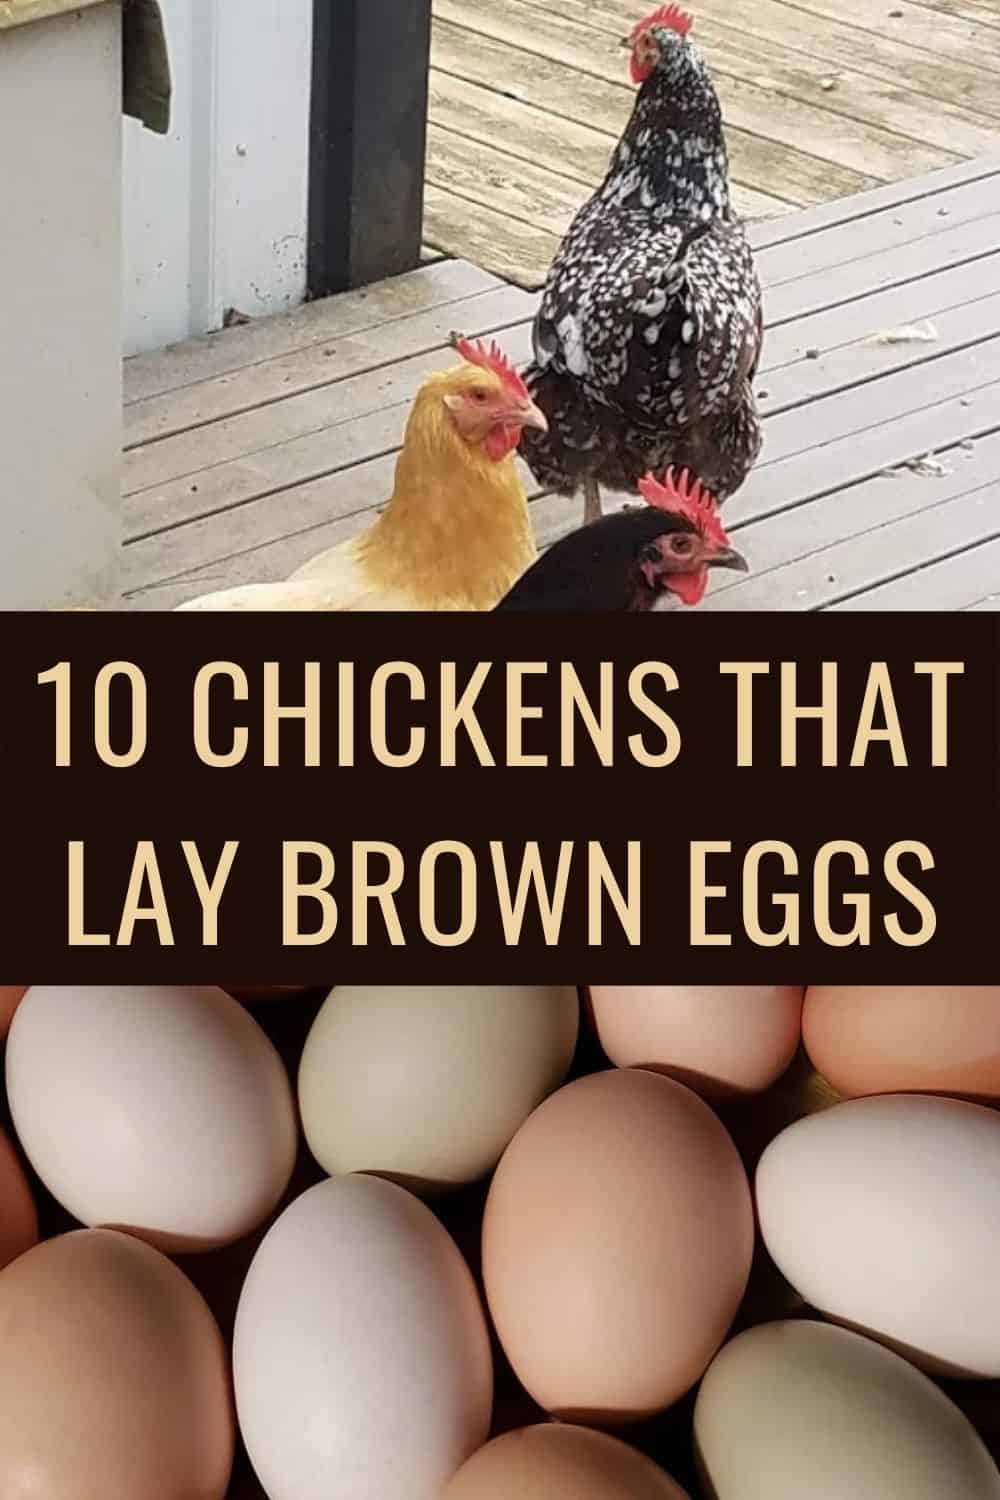 10 chickens that lay brown eggs